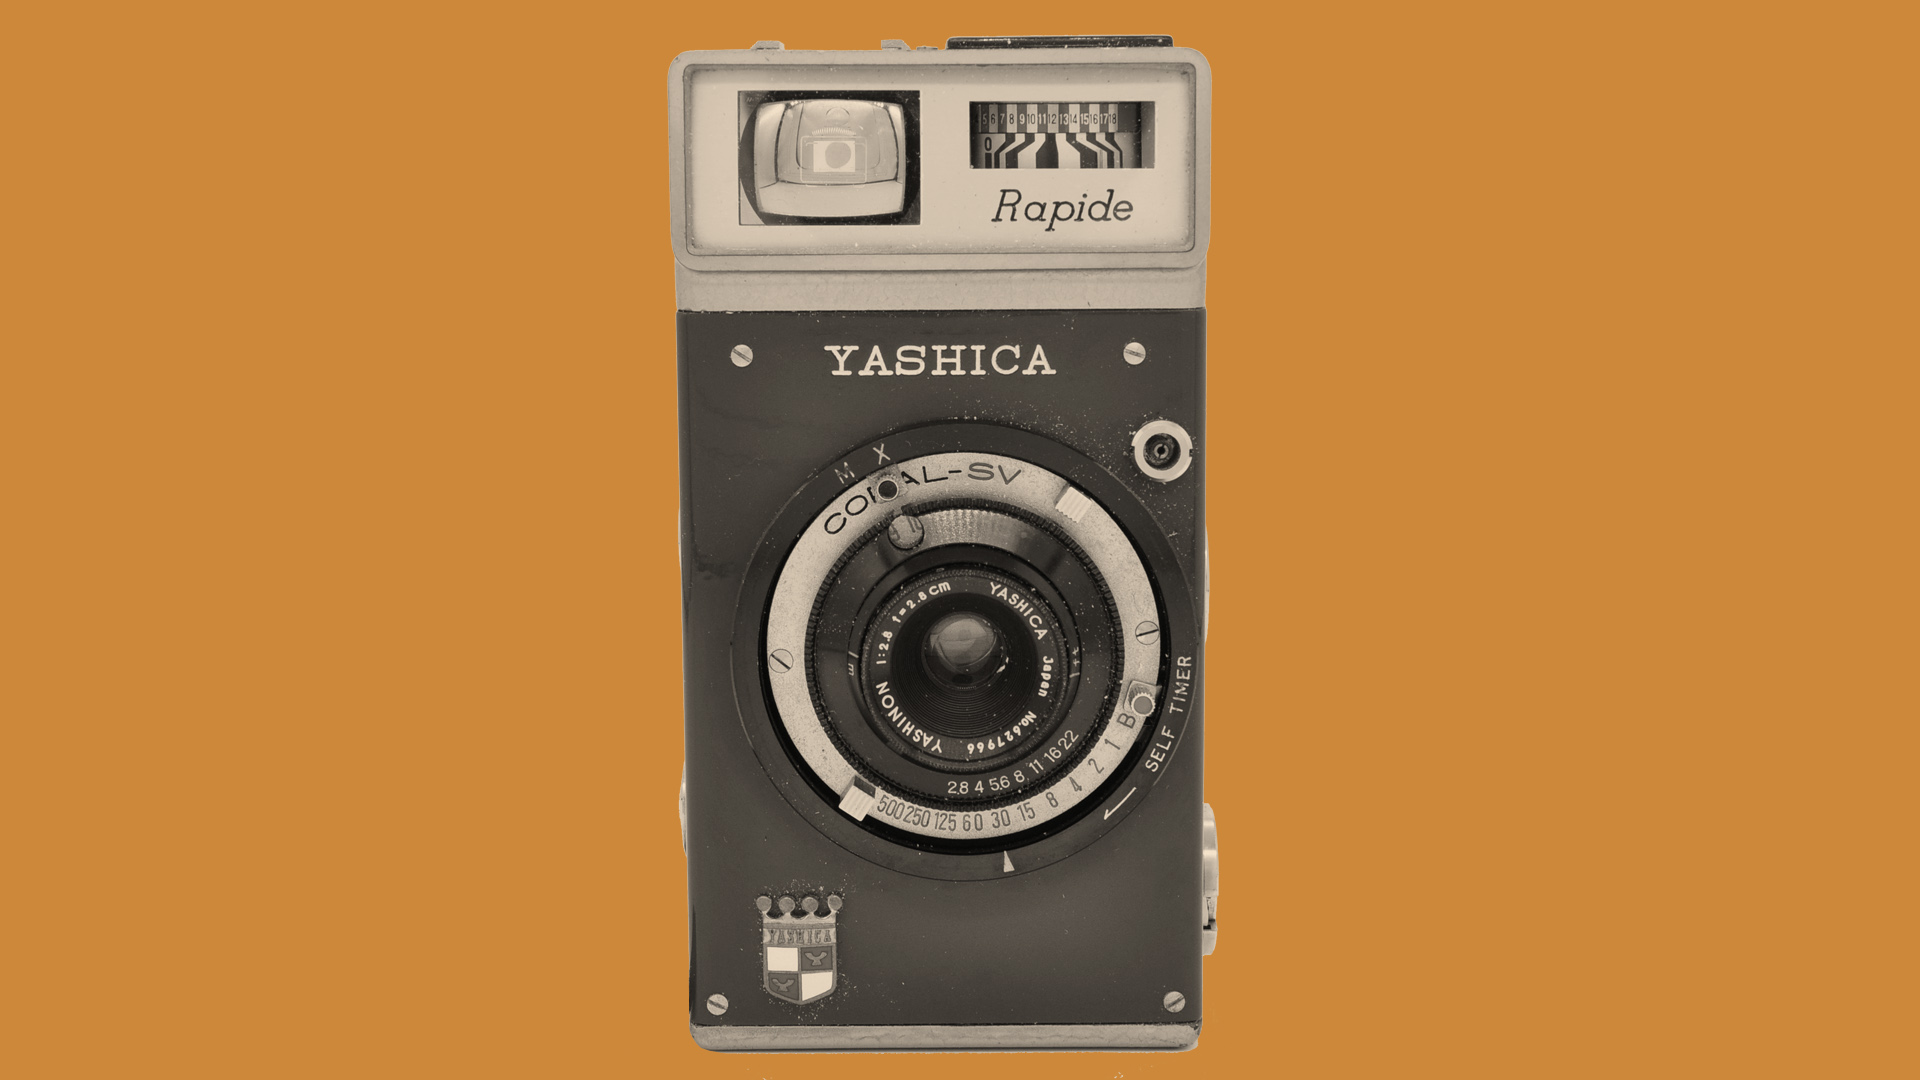 The front of the Yashica Rapide camera on a orange background